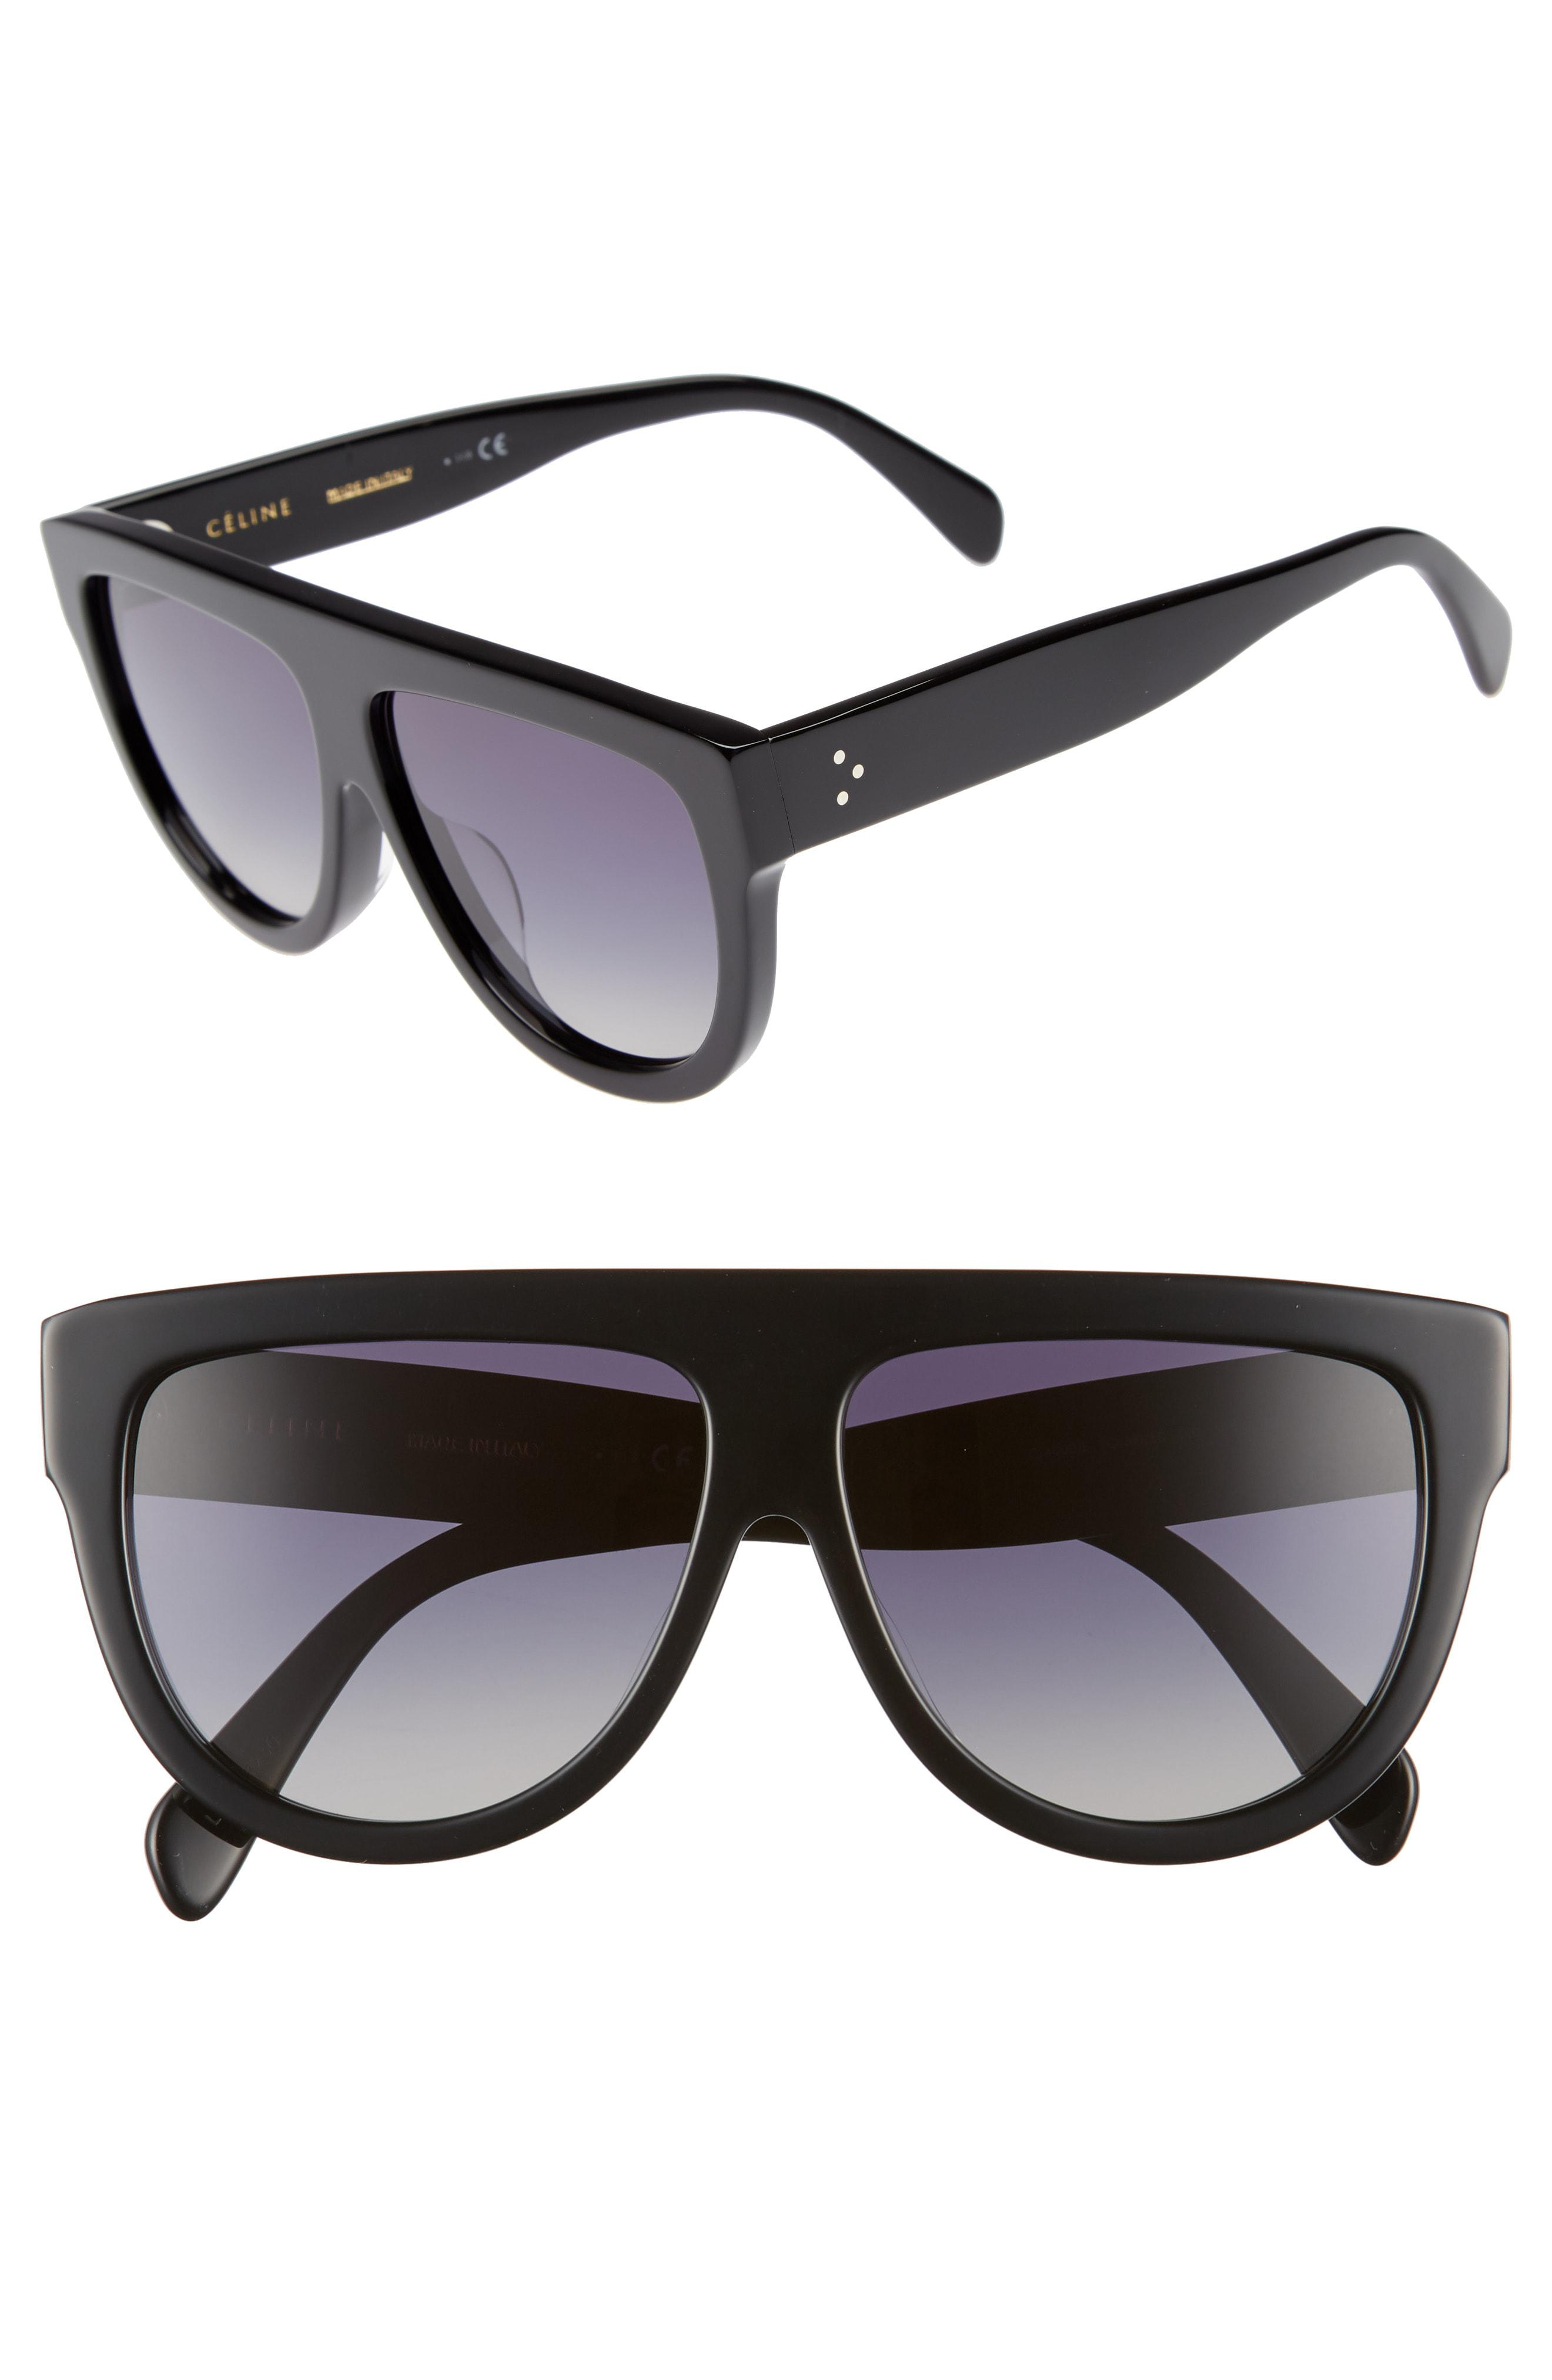 28ad5c81df Céline - Black Special Fit 60mm Polarized Gradient Flat Top Sunglasses -  Lyst. View fullscreen